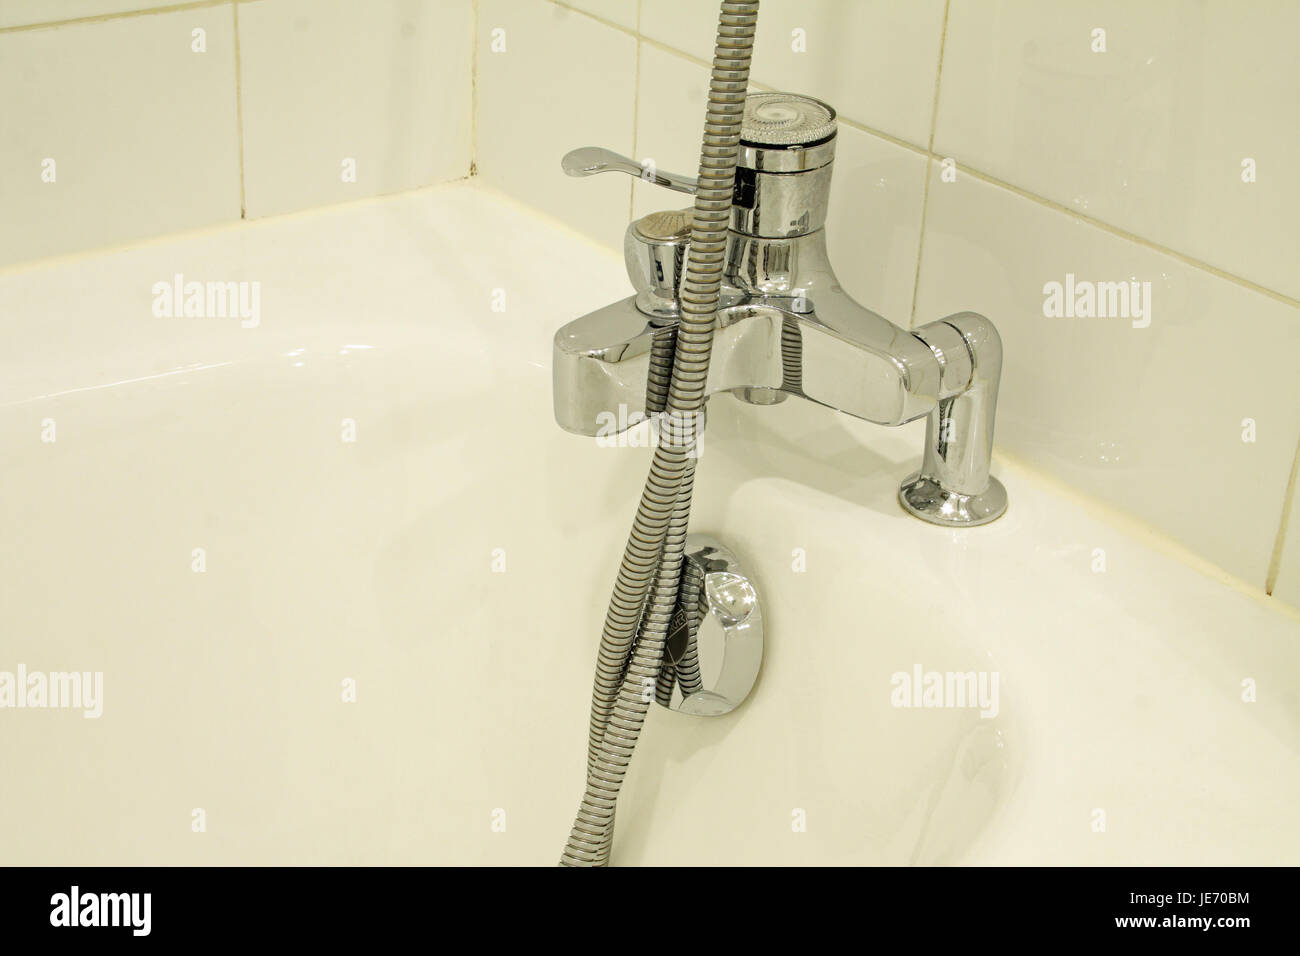 Bath, tap and shower hose Stock Photo, Royalty Free Image ...